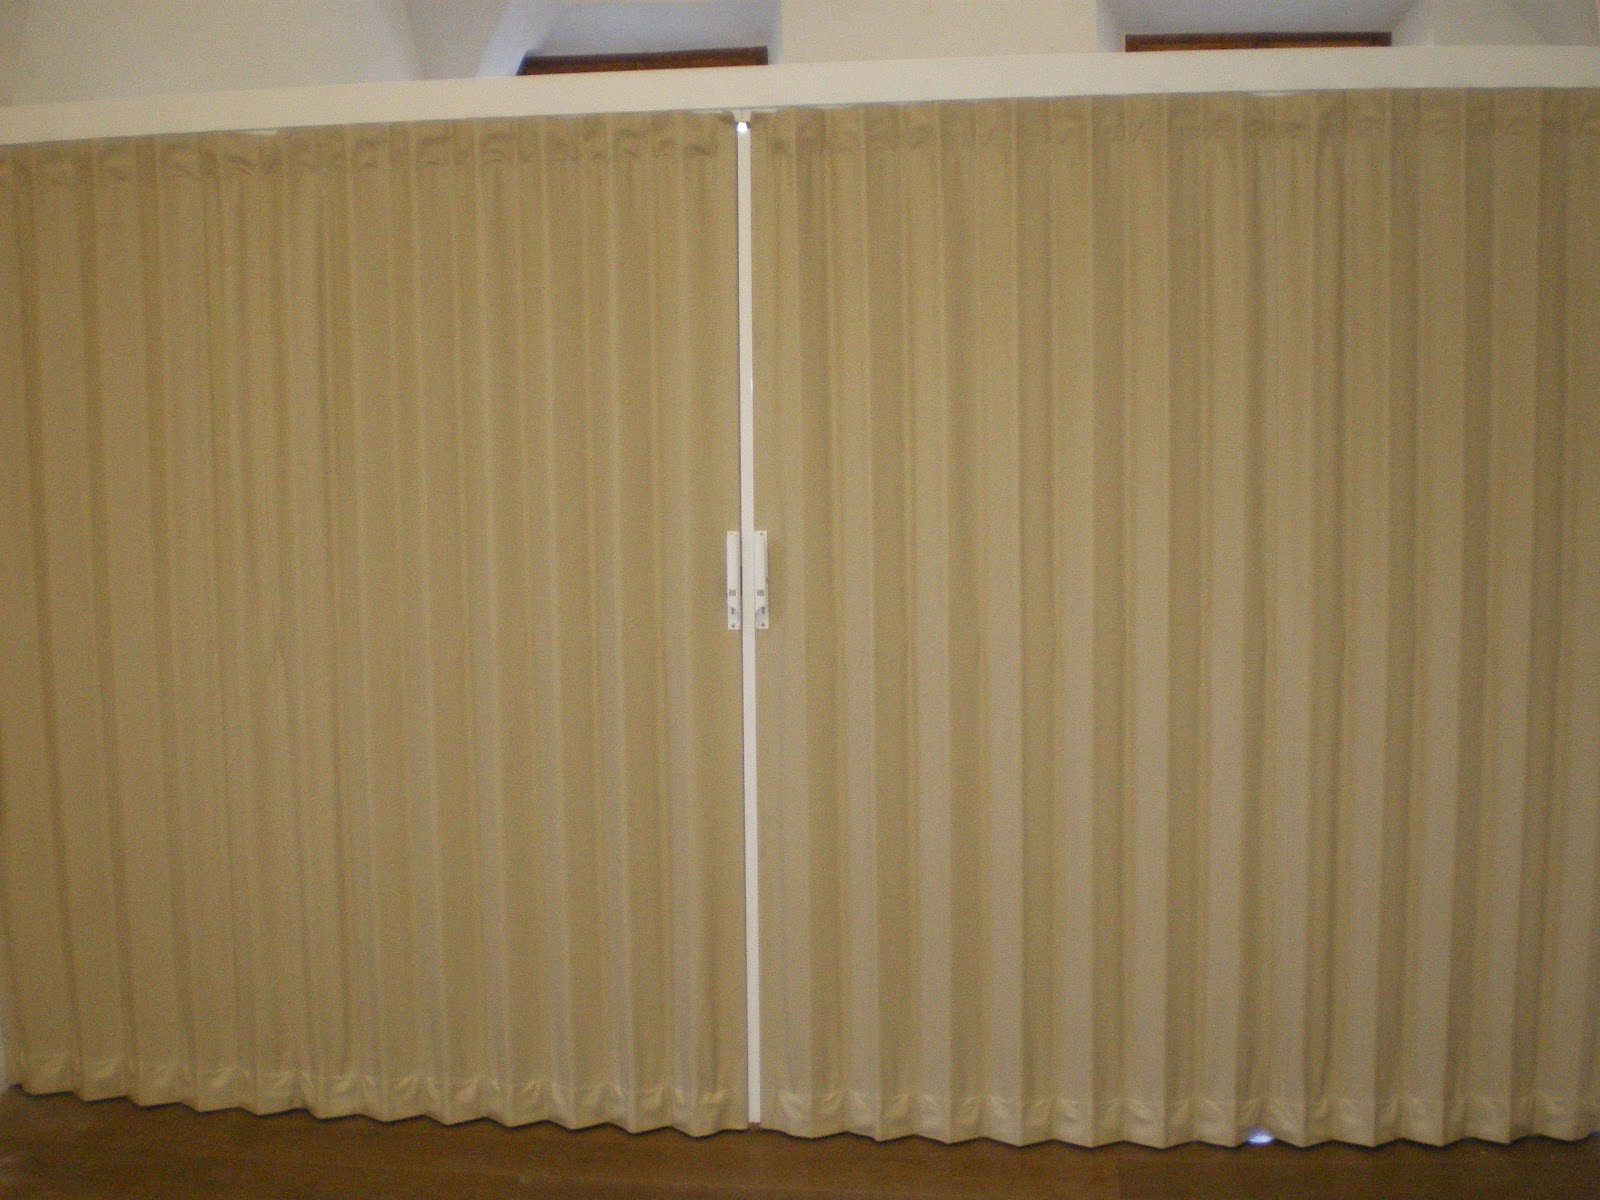 1200 #493216 Accordion Doors: Accordion Door Within A Vault image Commercial Folding Doors 29731600